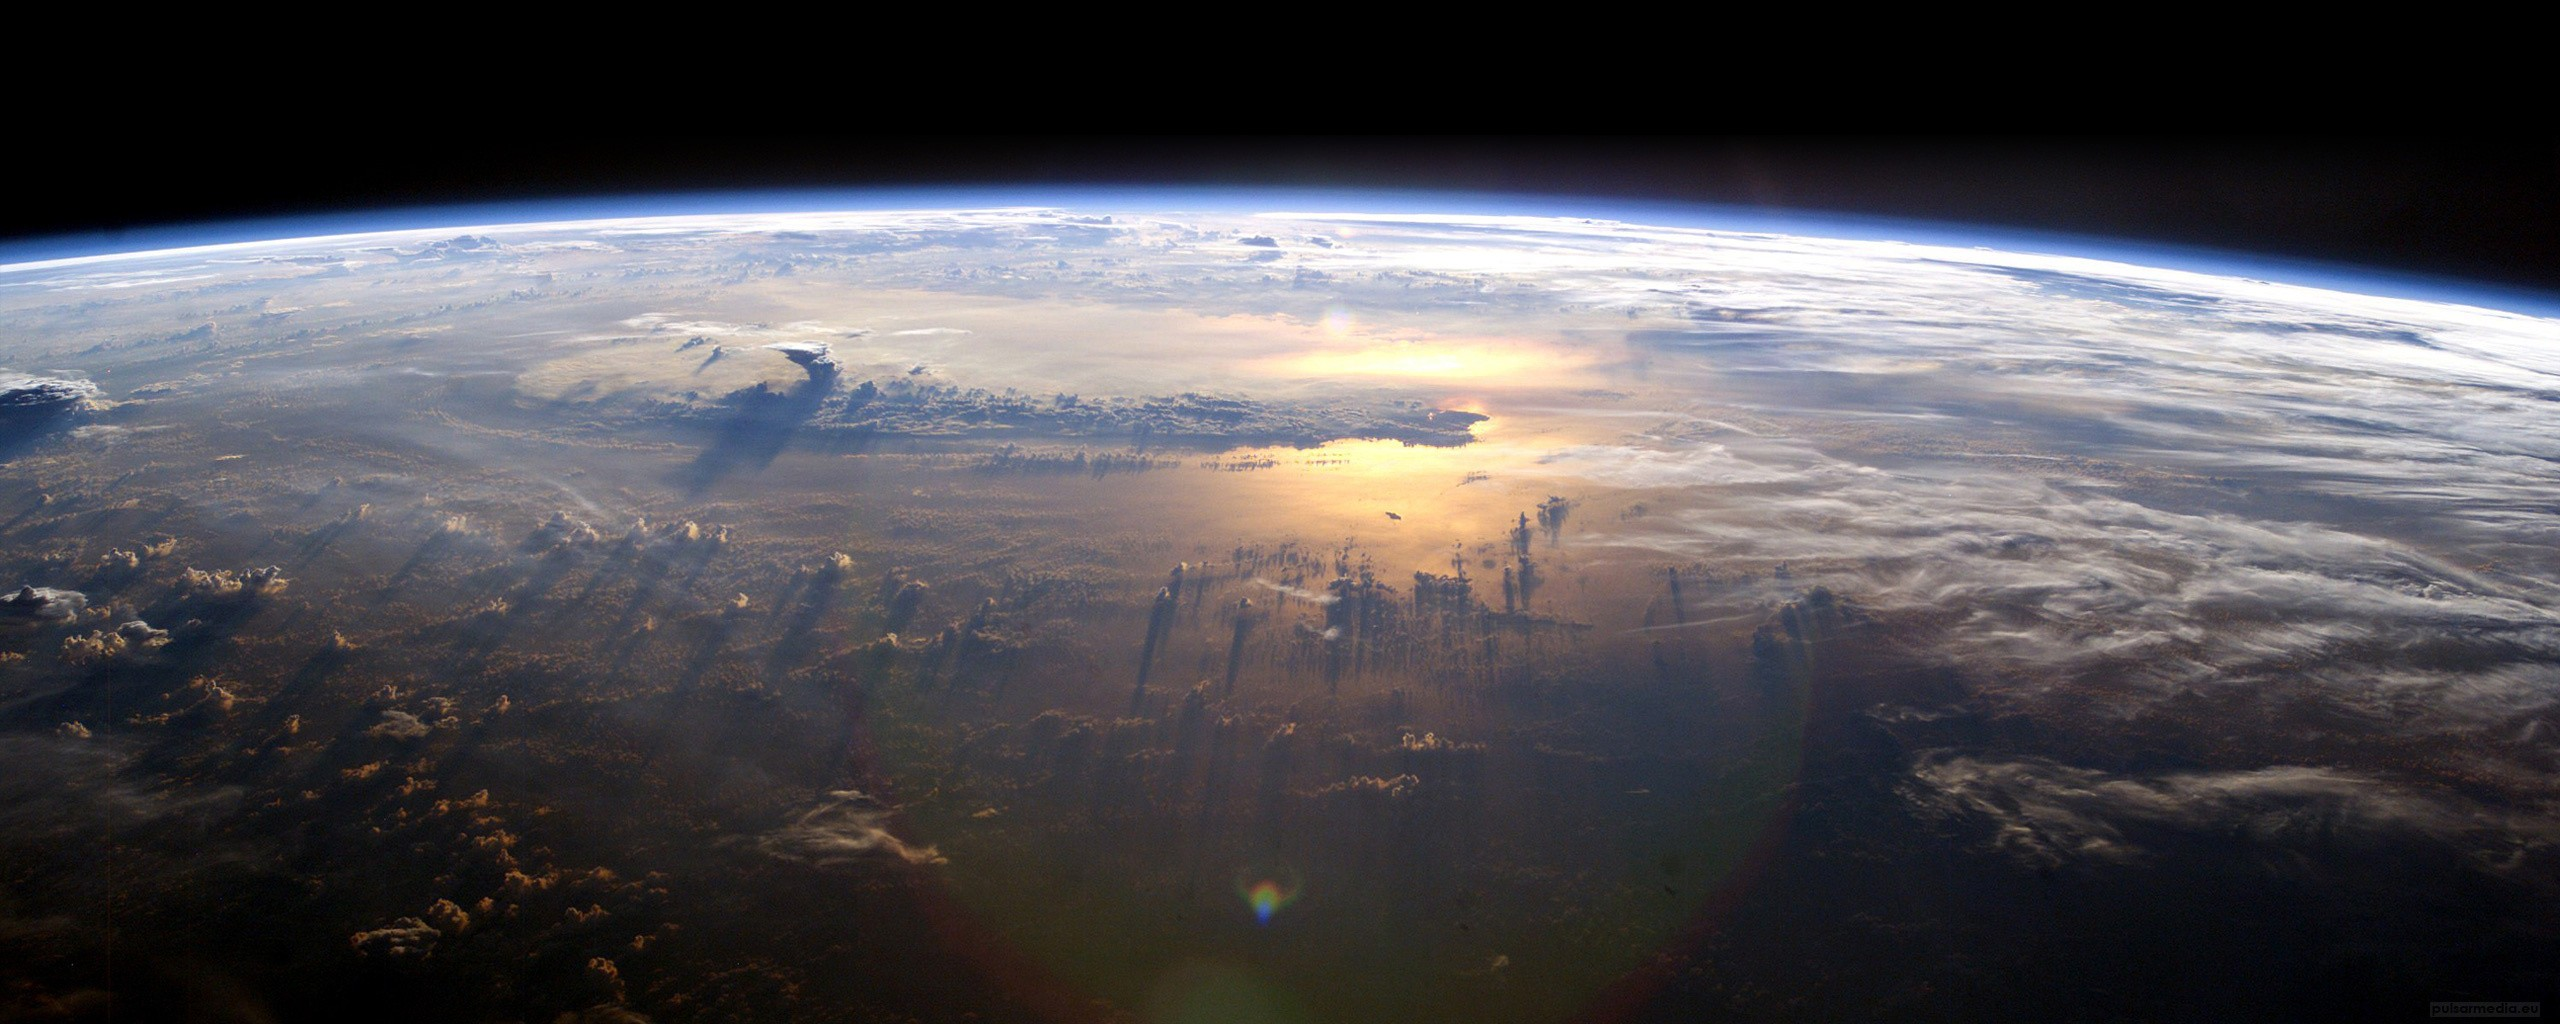 Planet Earth Wallpapers, 34 Widescreen HQ Definition Wallpapers of